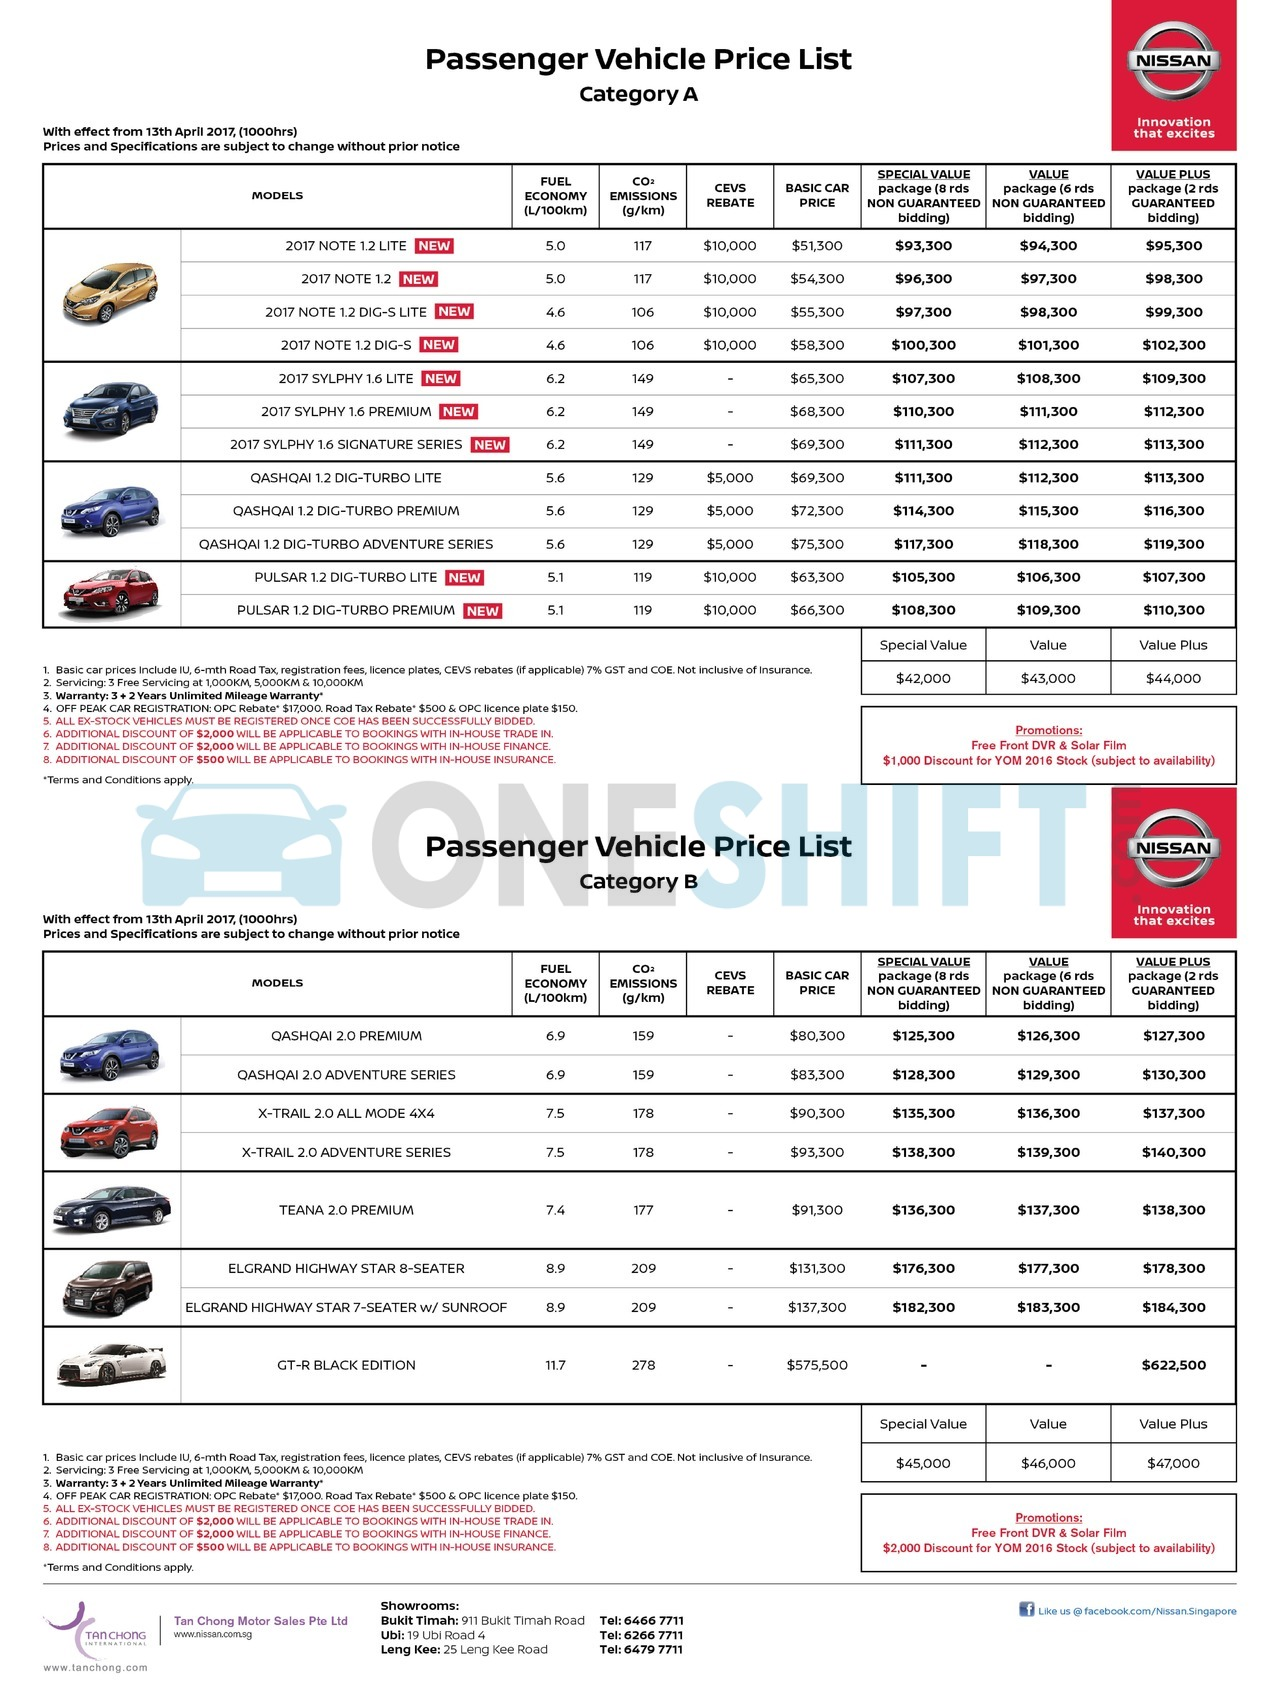 nissan Price List 4-13-2017 Page 1